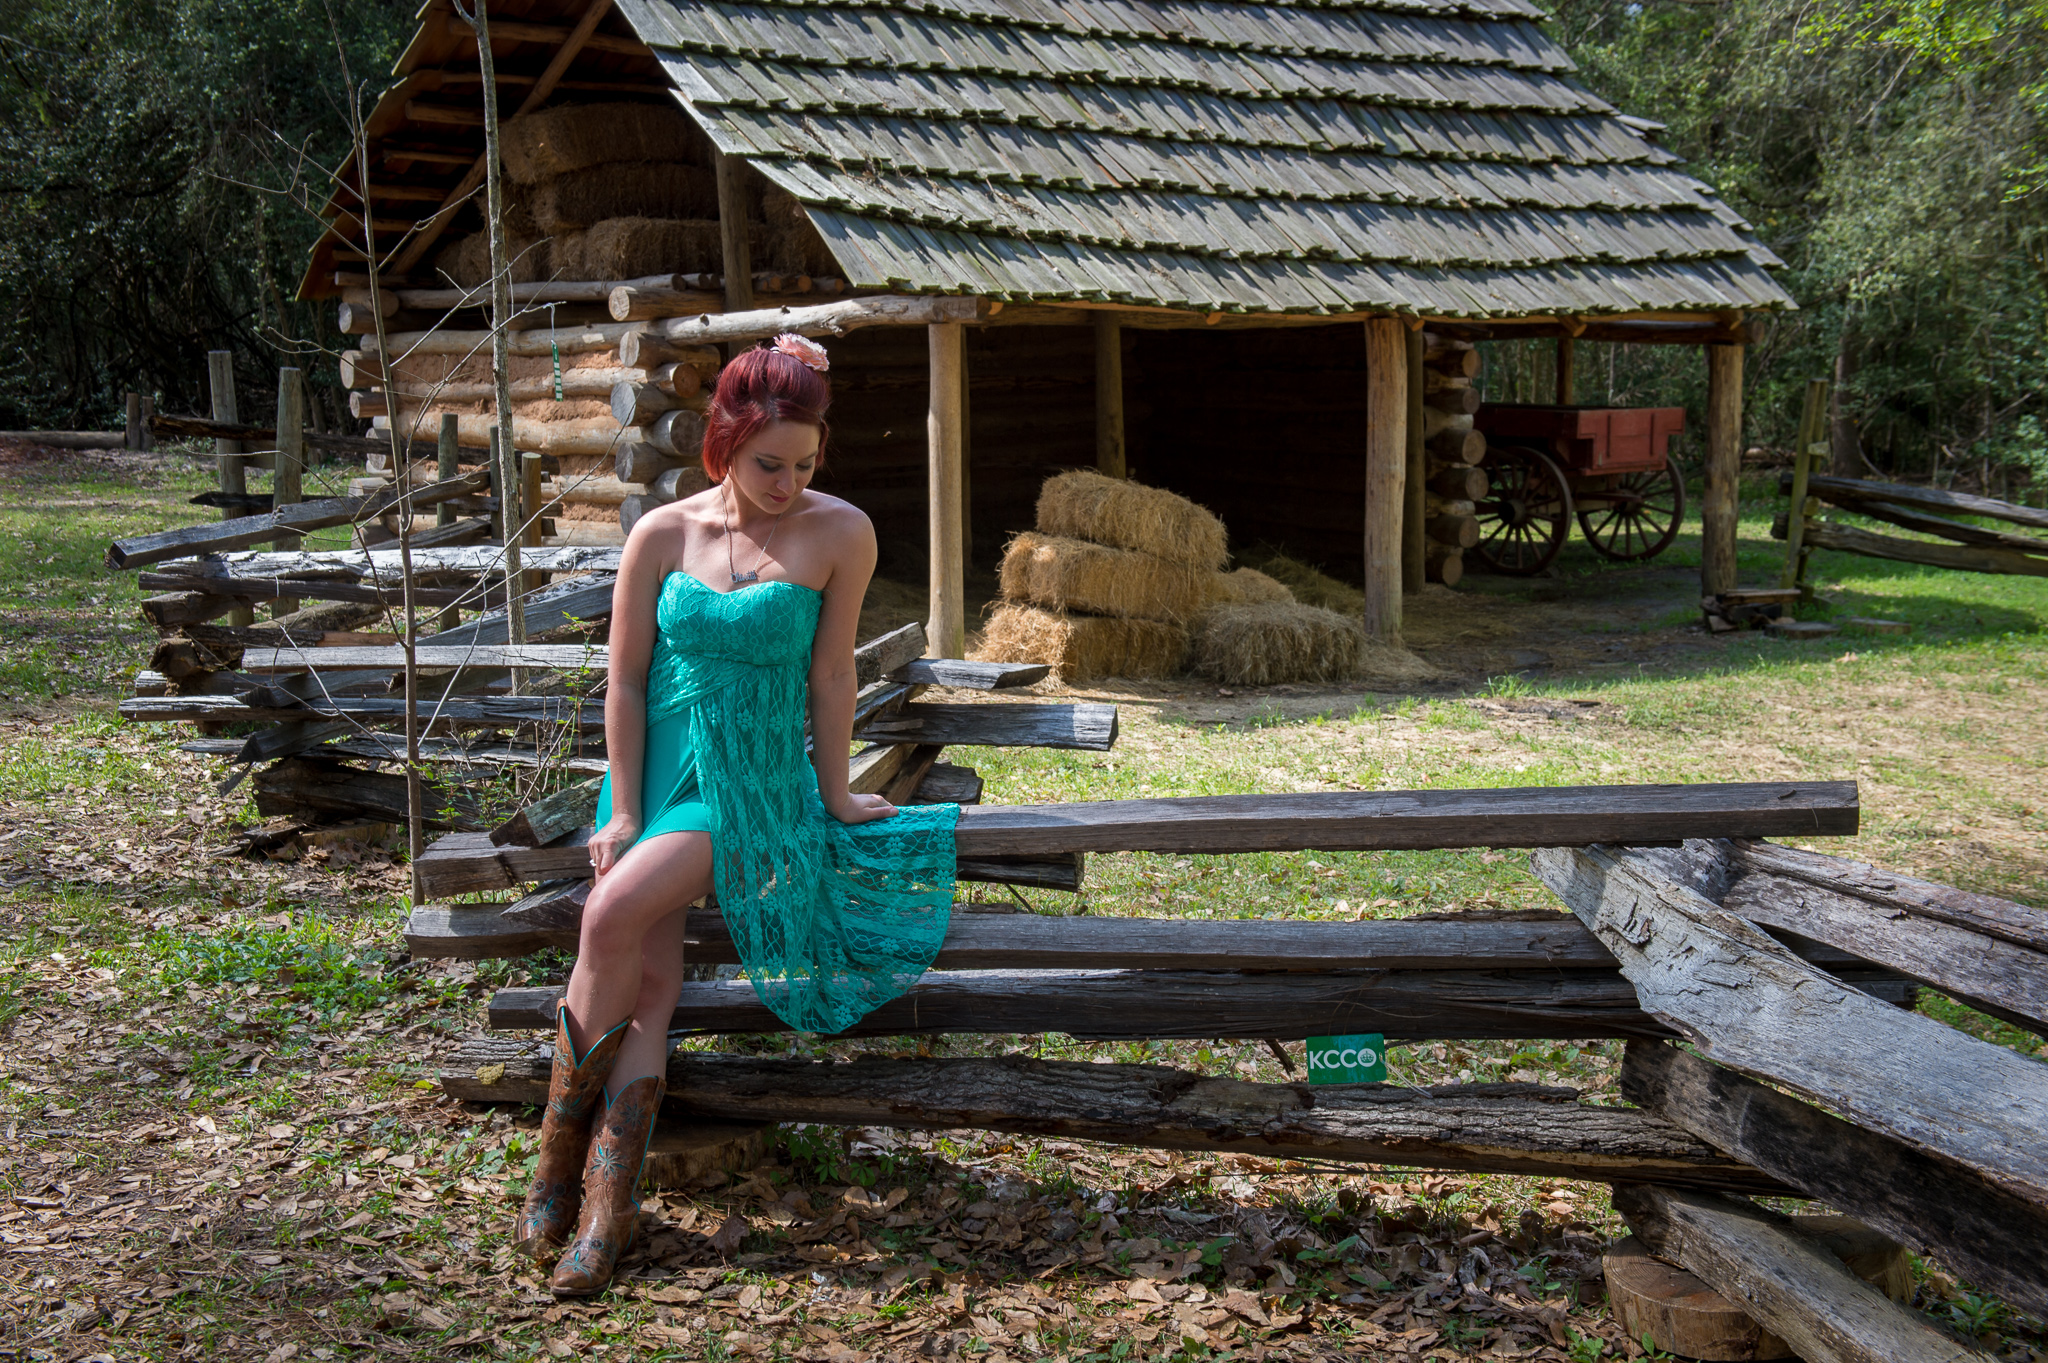 Country Western Woman Photograph